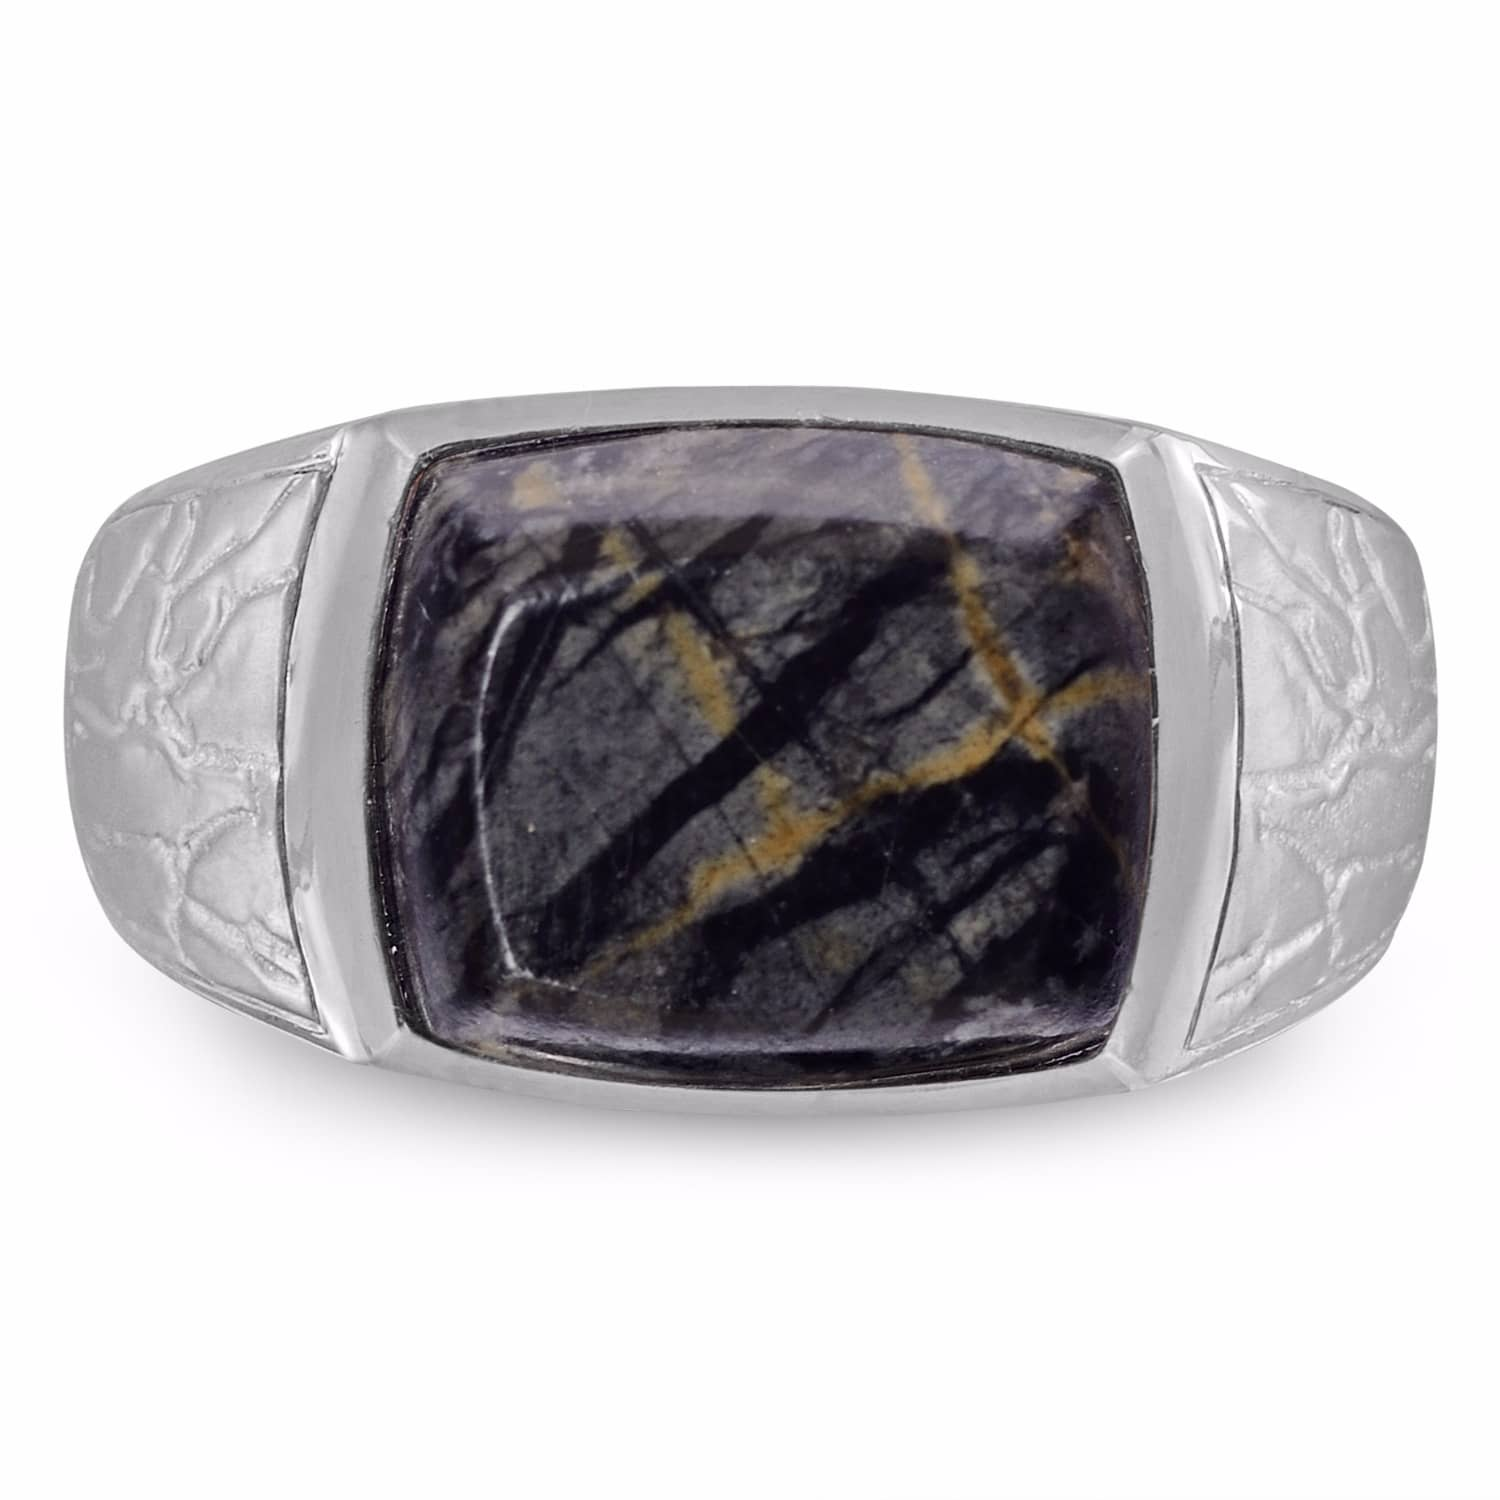 Grey Picture Jasper Stone Ring Lmj Wolf Badger